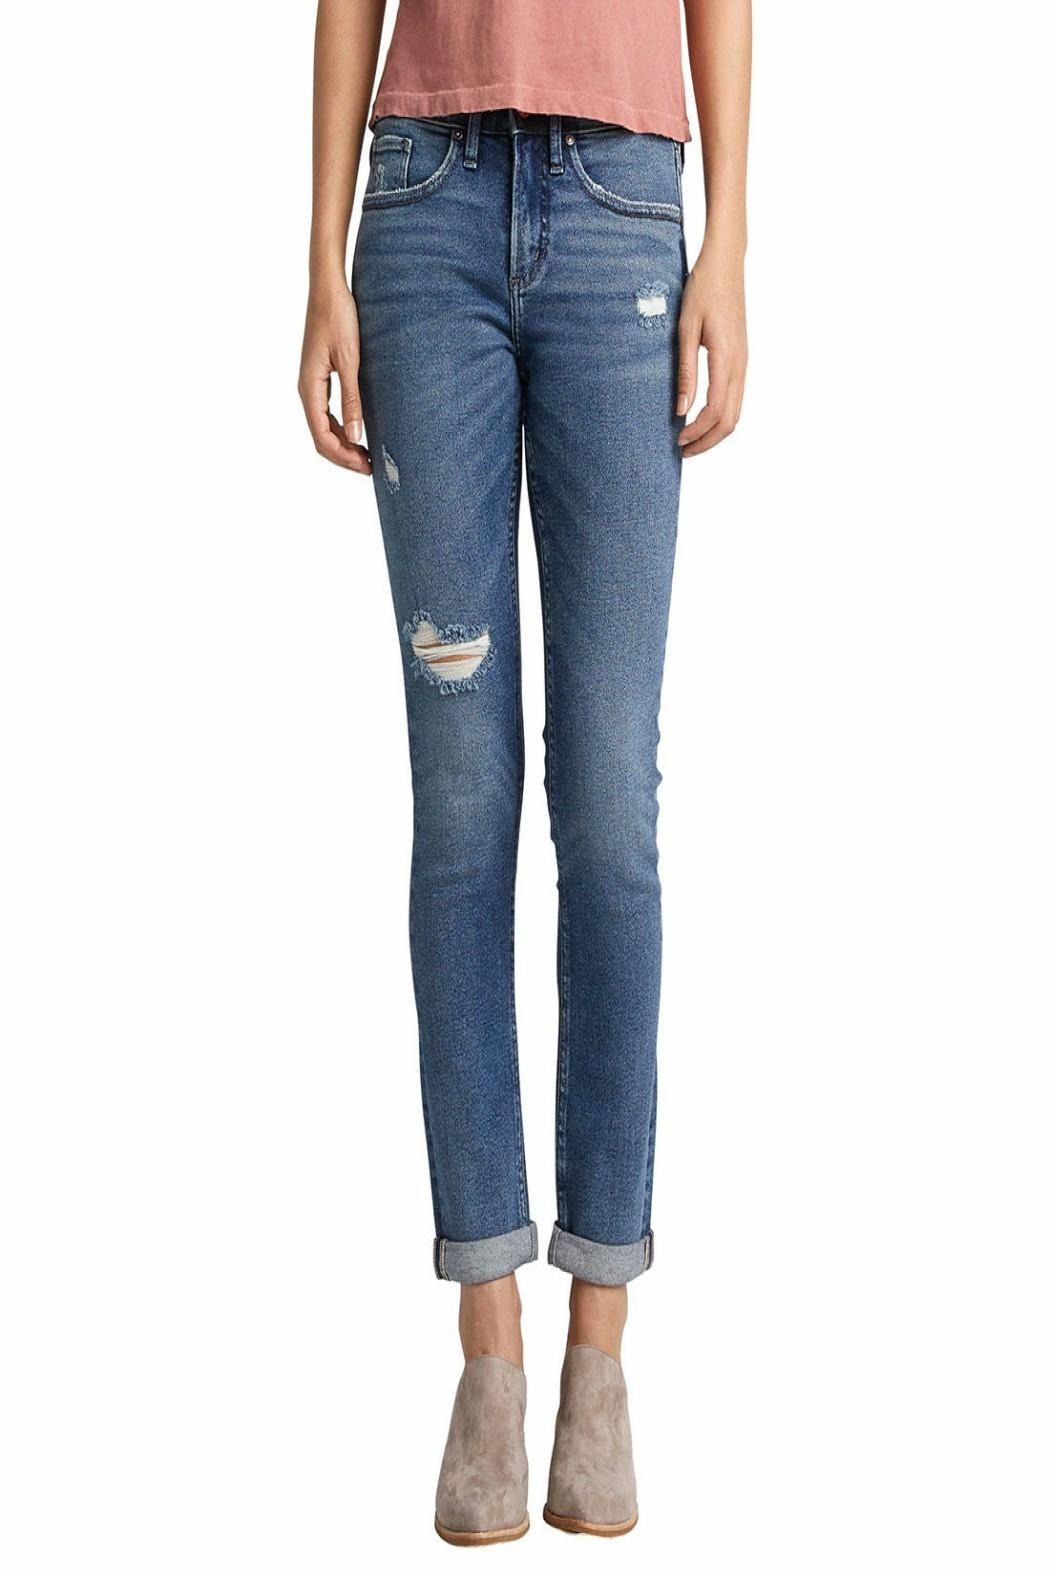 Silver Jeans Co. Not Your-Boyfriend's Jeans - Main Image